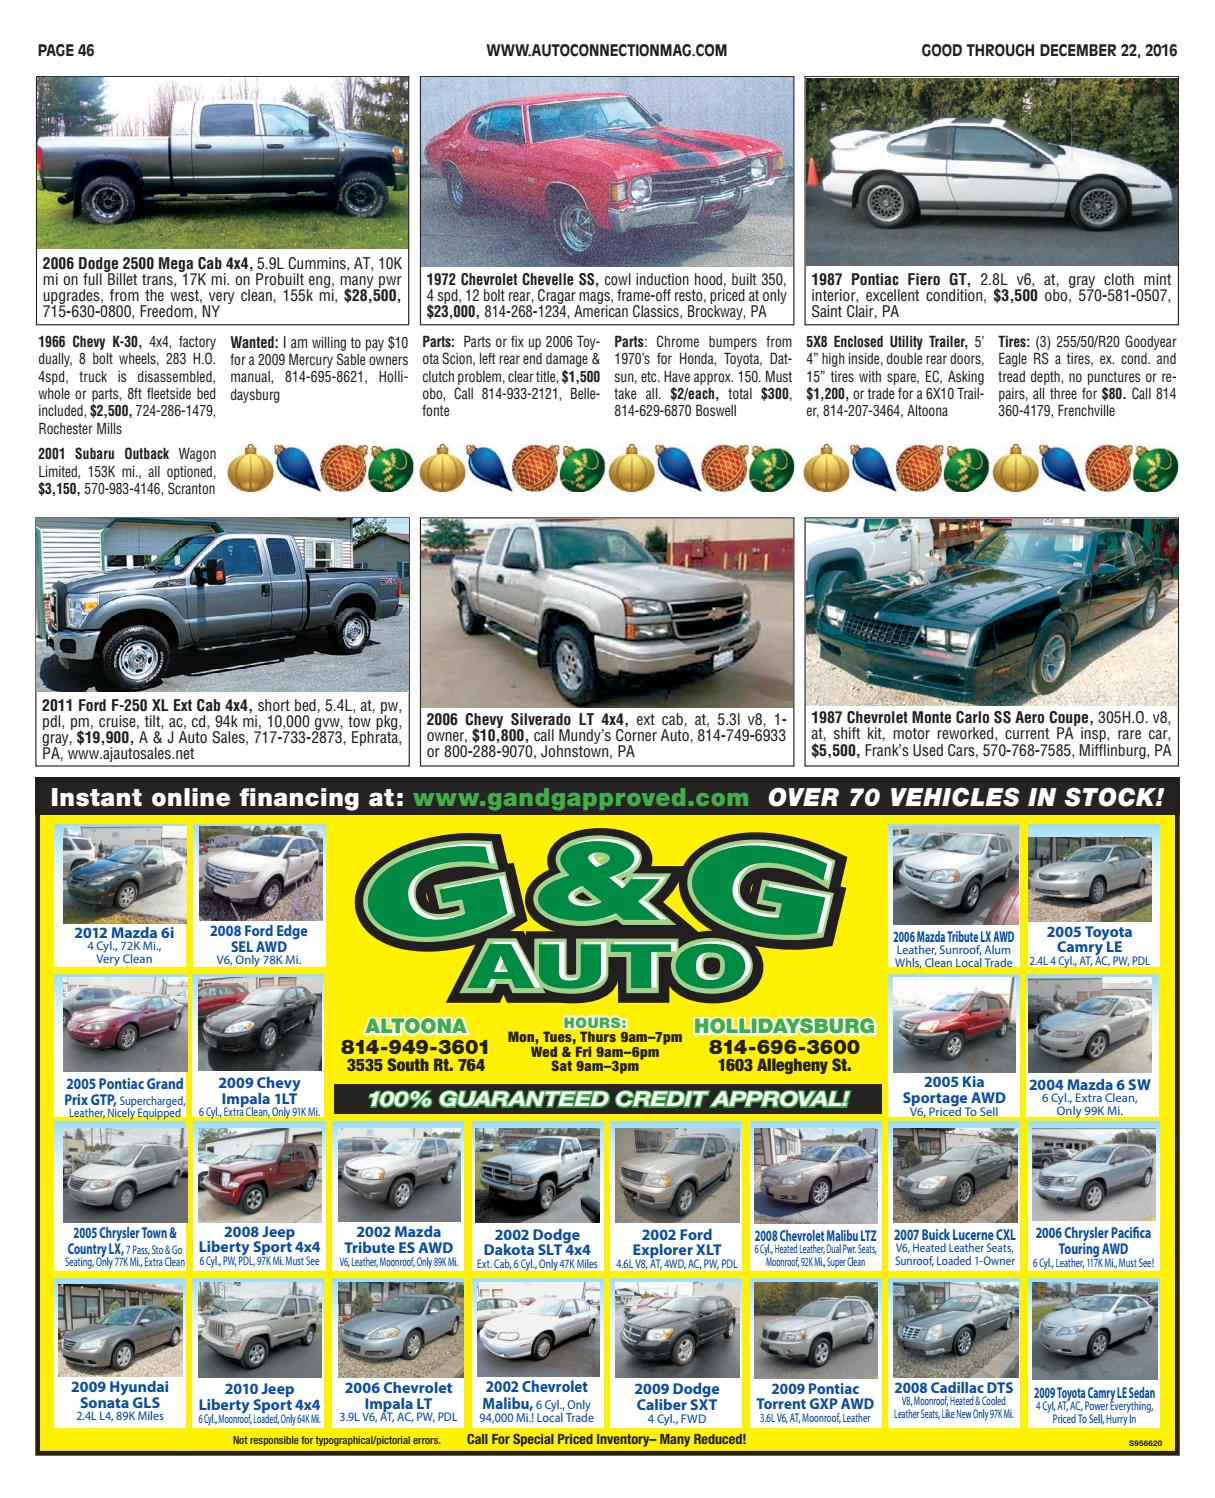 12-22-16 Auto Connection Magazine by Auto Connection Magazine - issuu